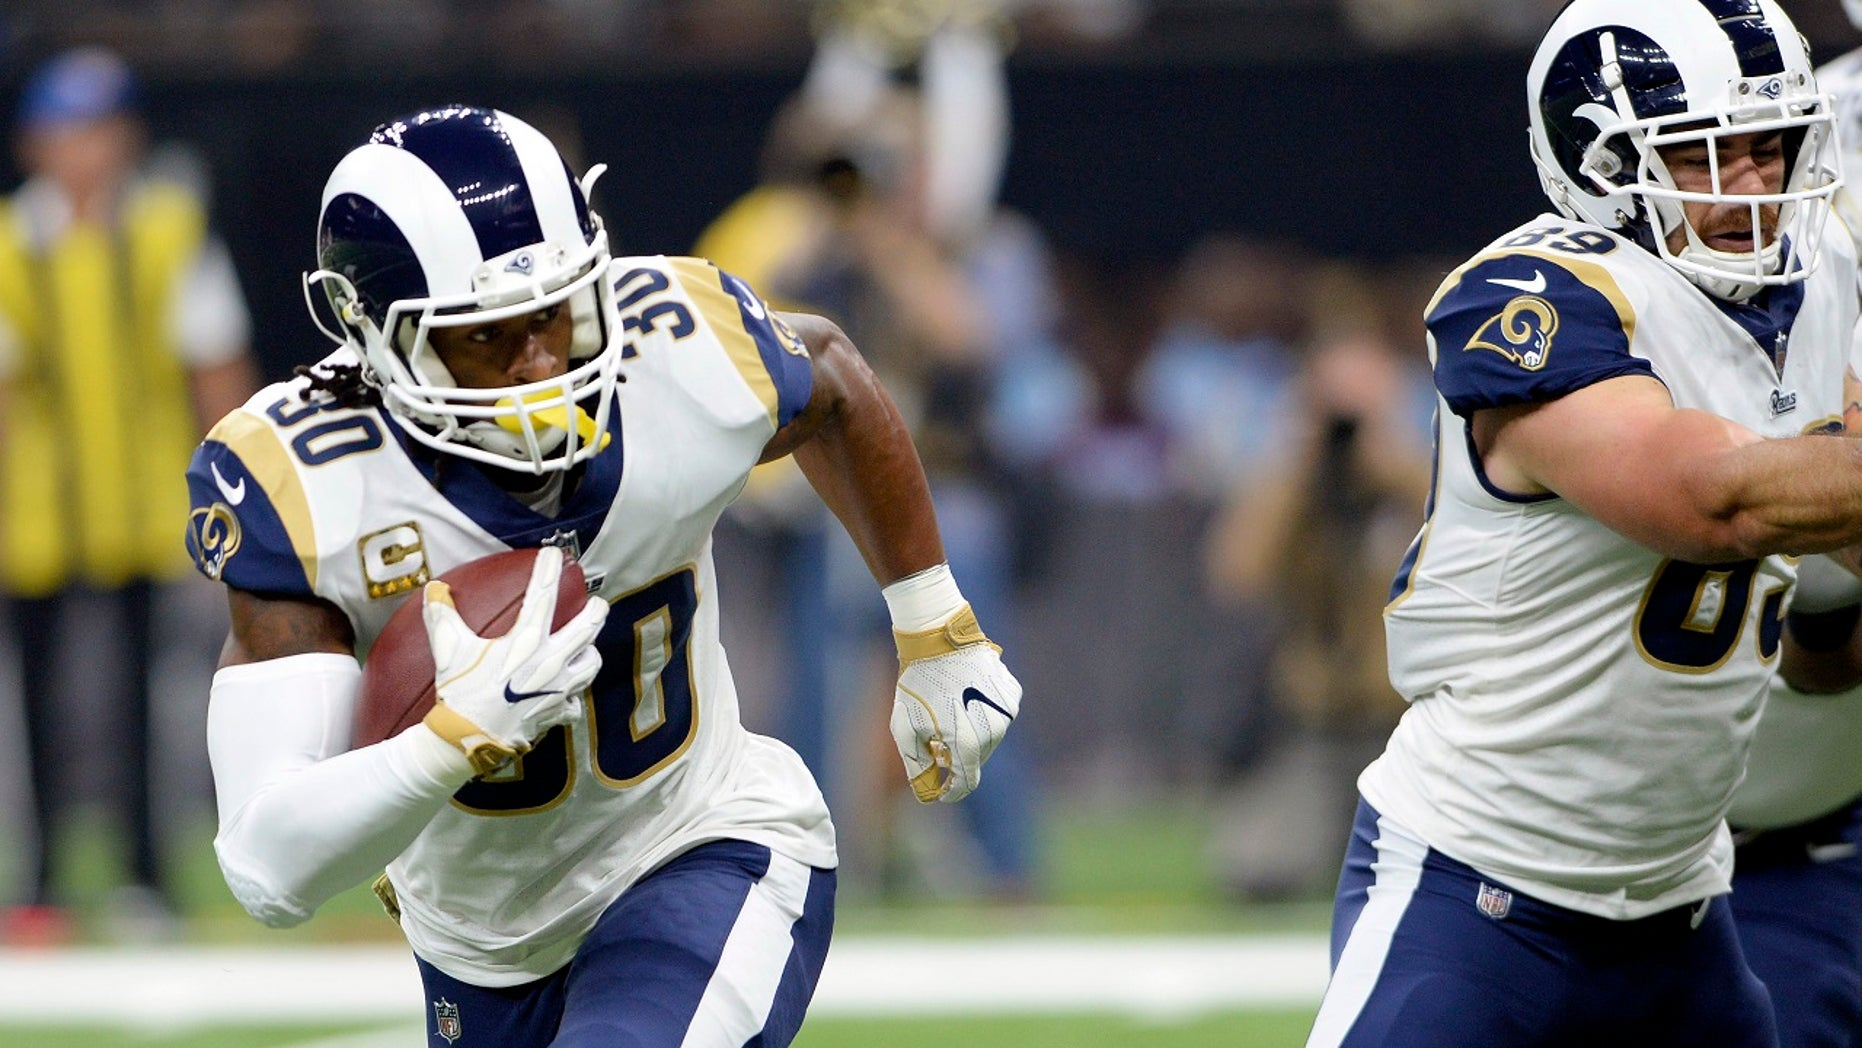 Rams make late defensive stand, hold off Seahawks 36-31